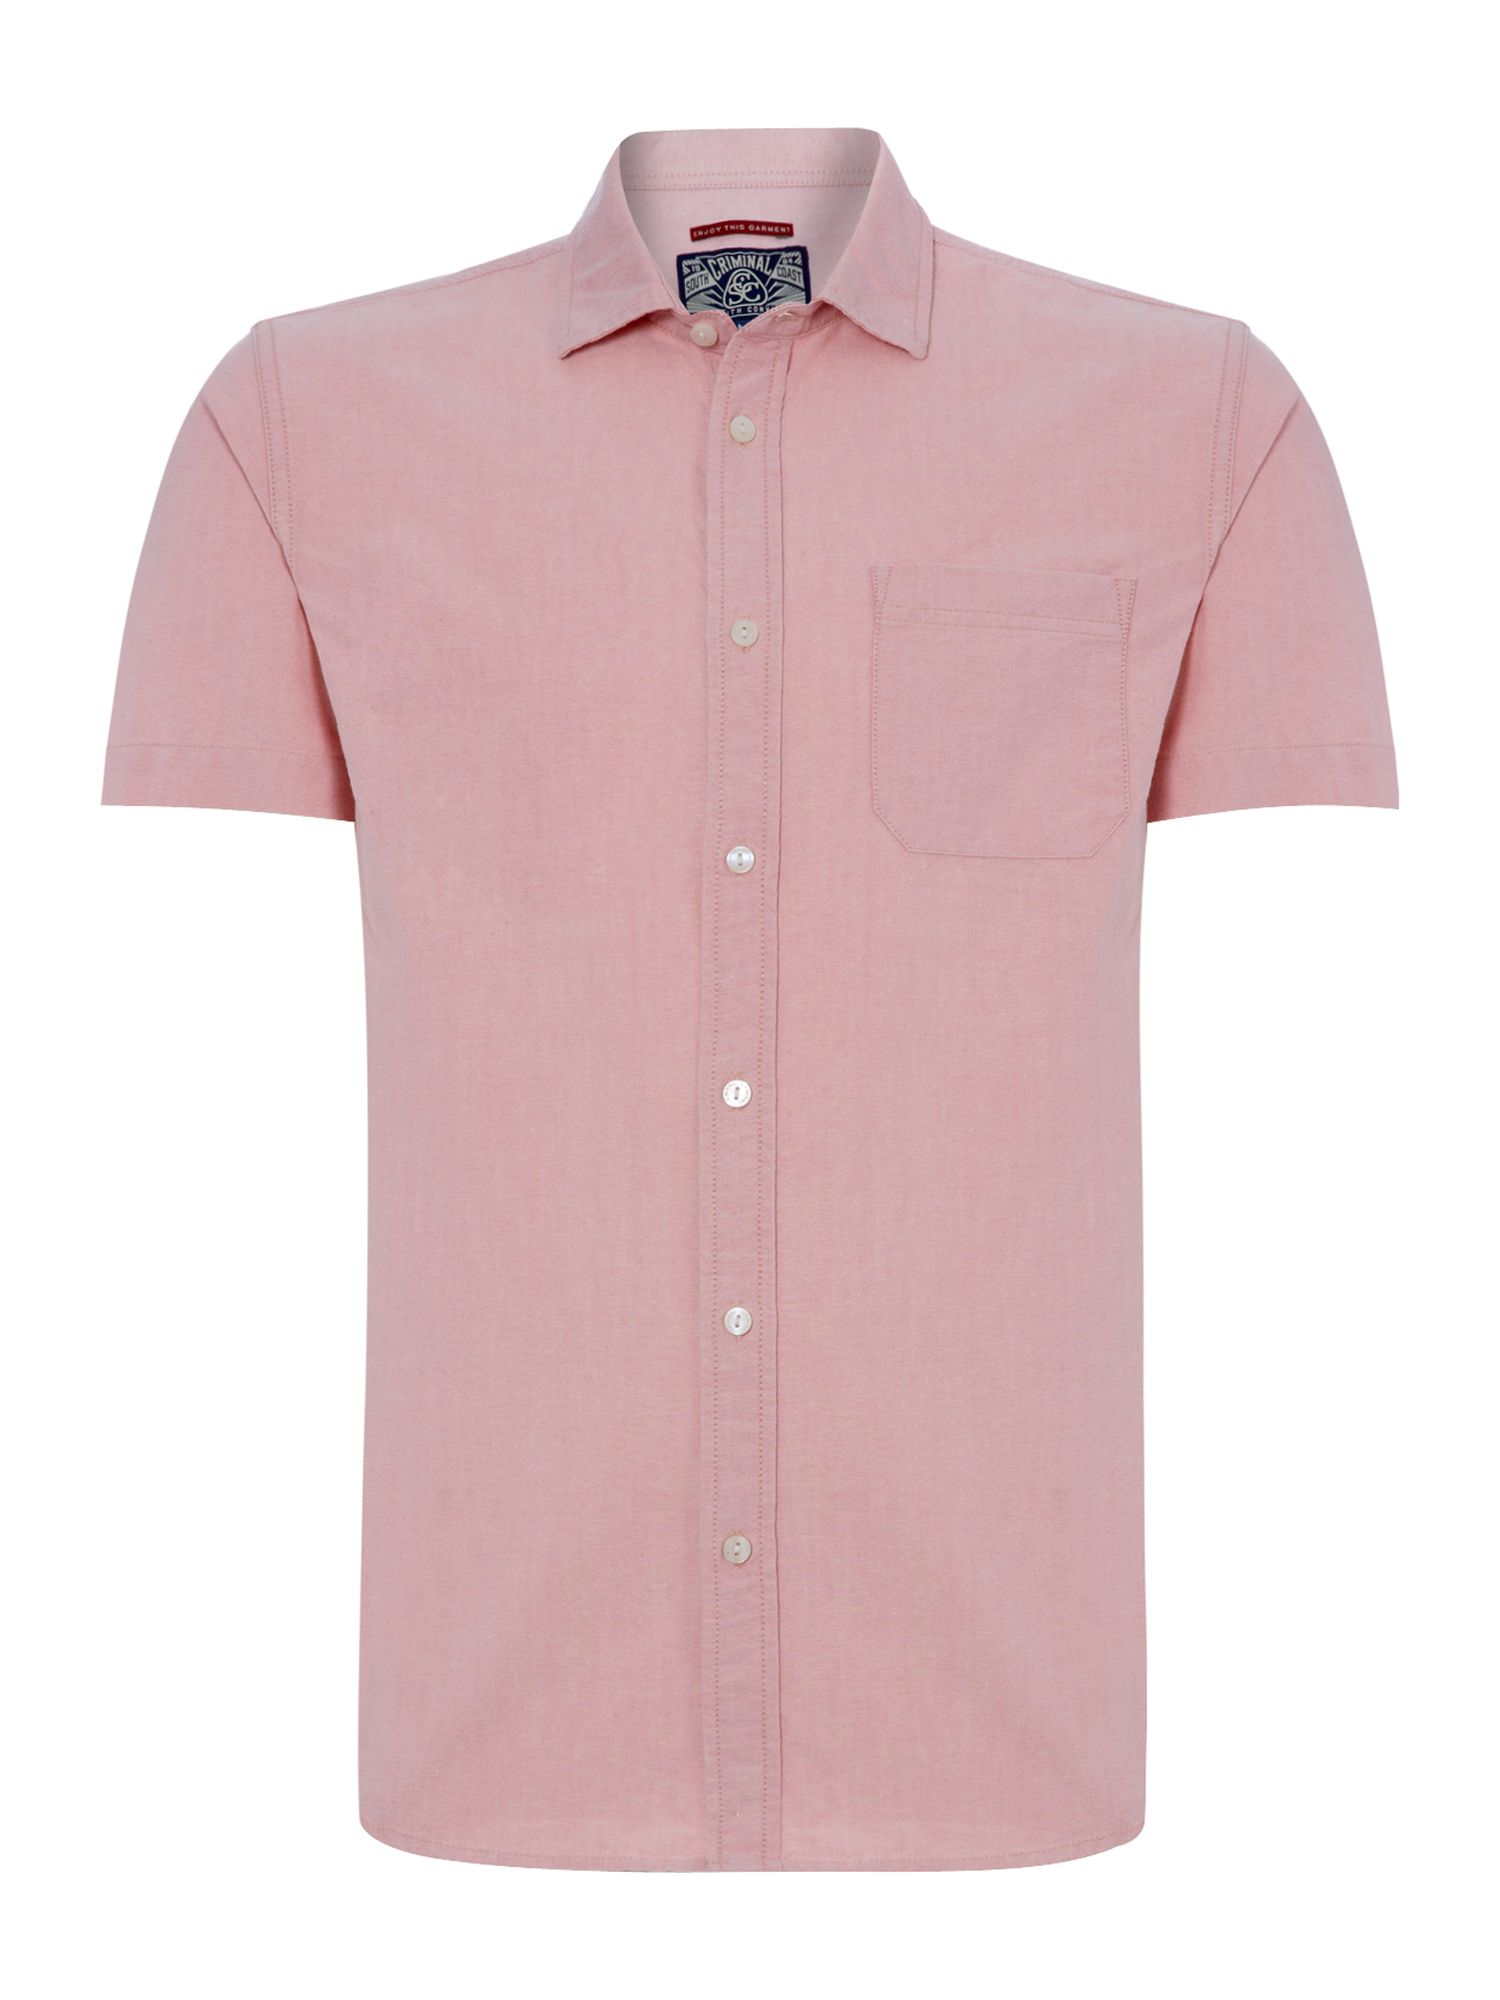 Morgan Oxford Short Sleeved Shirt